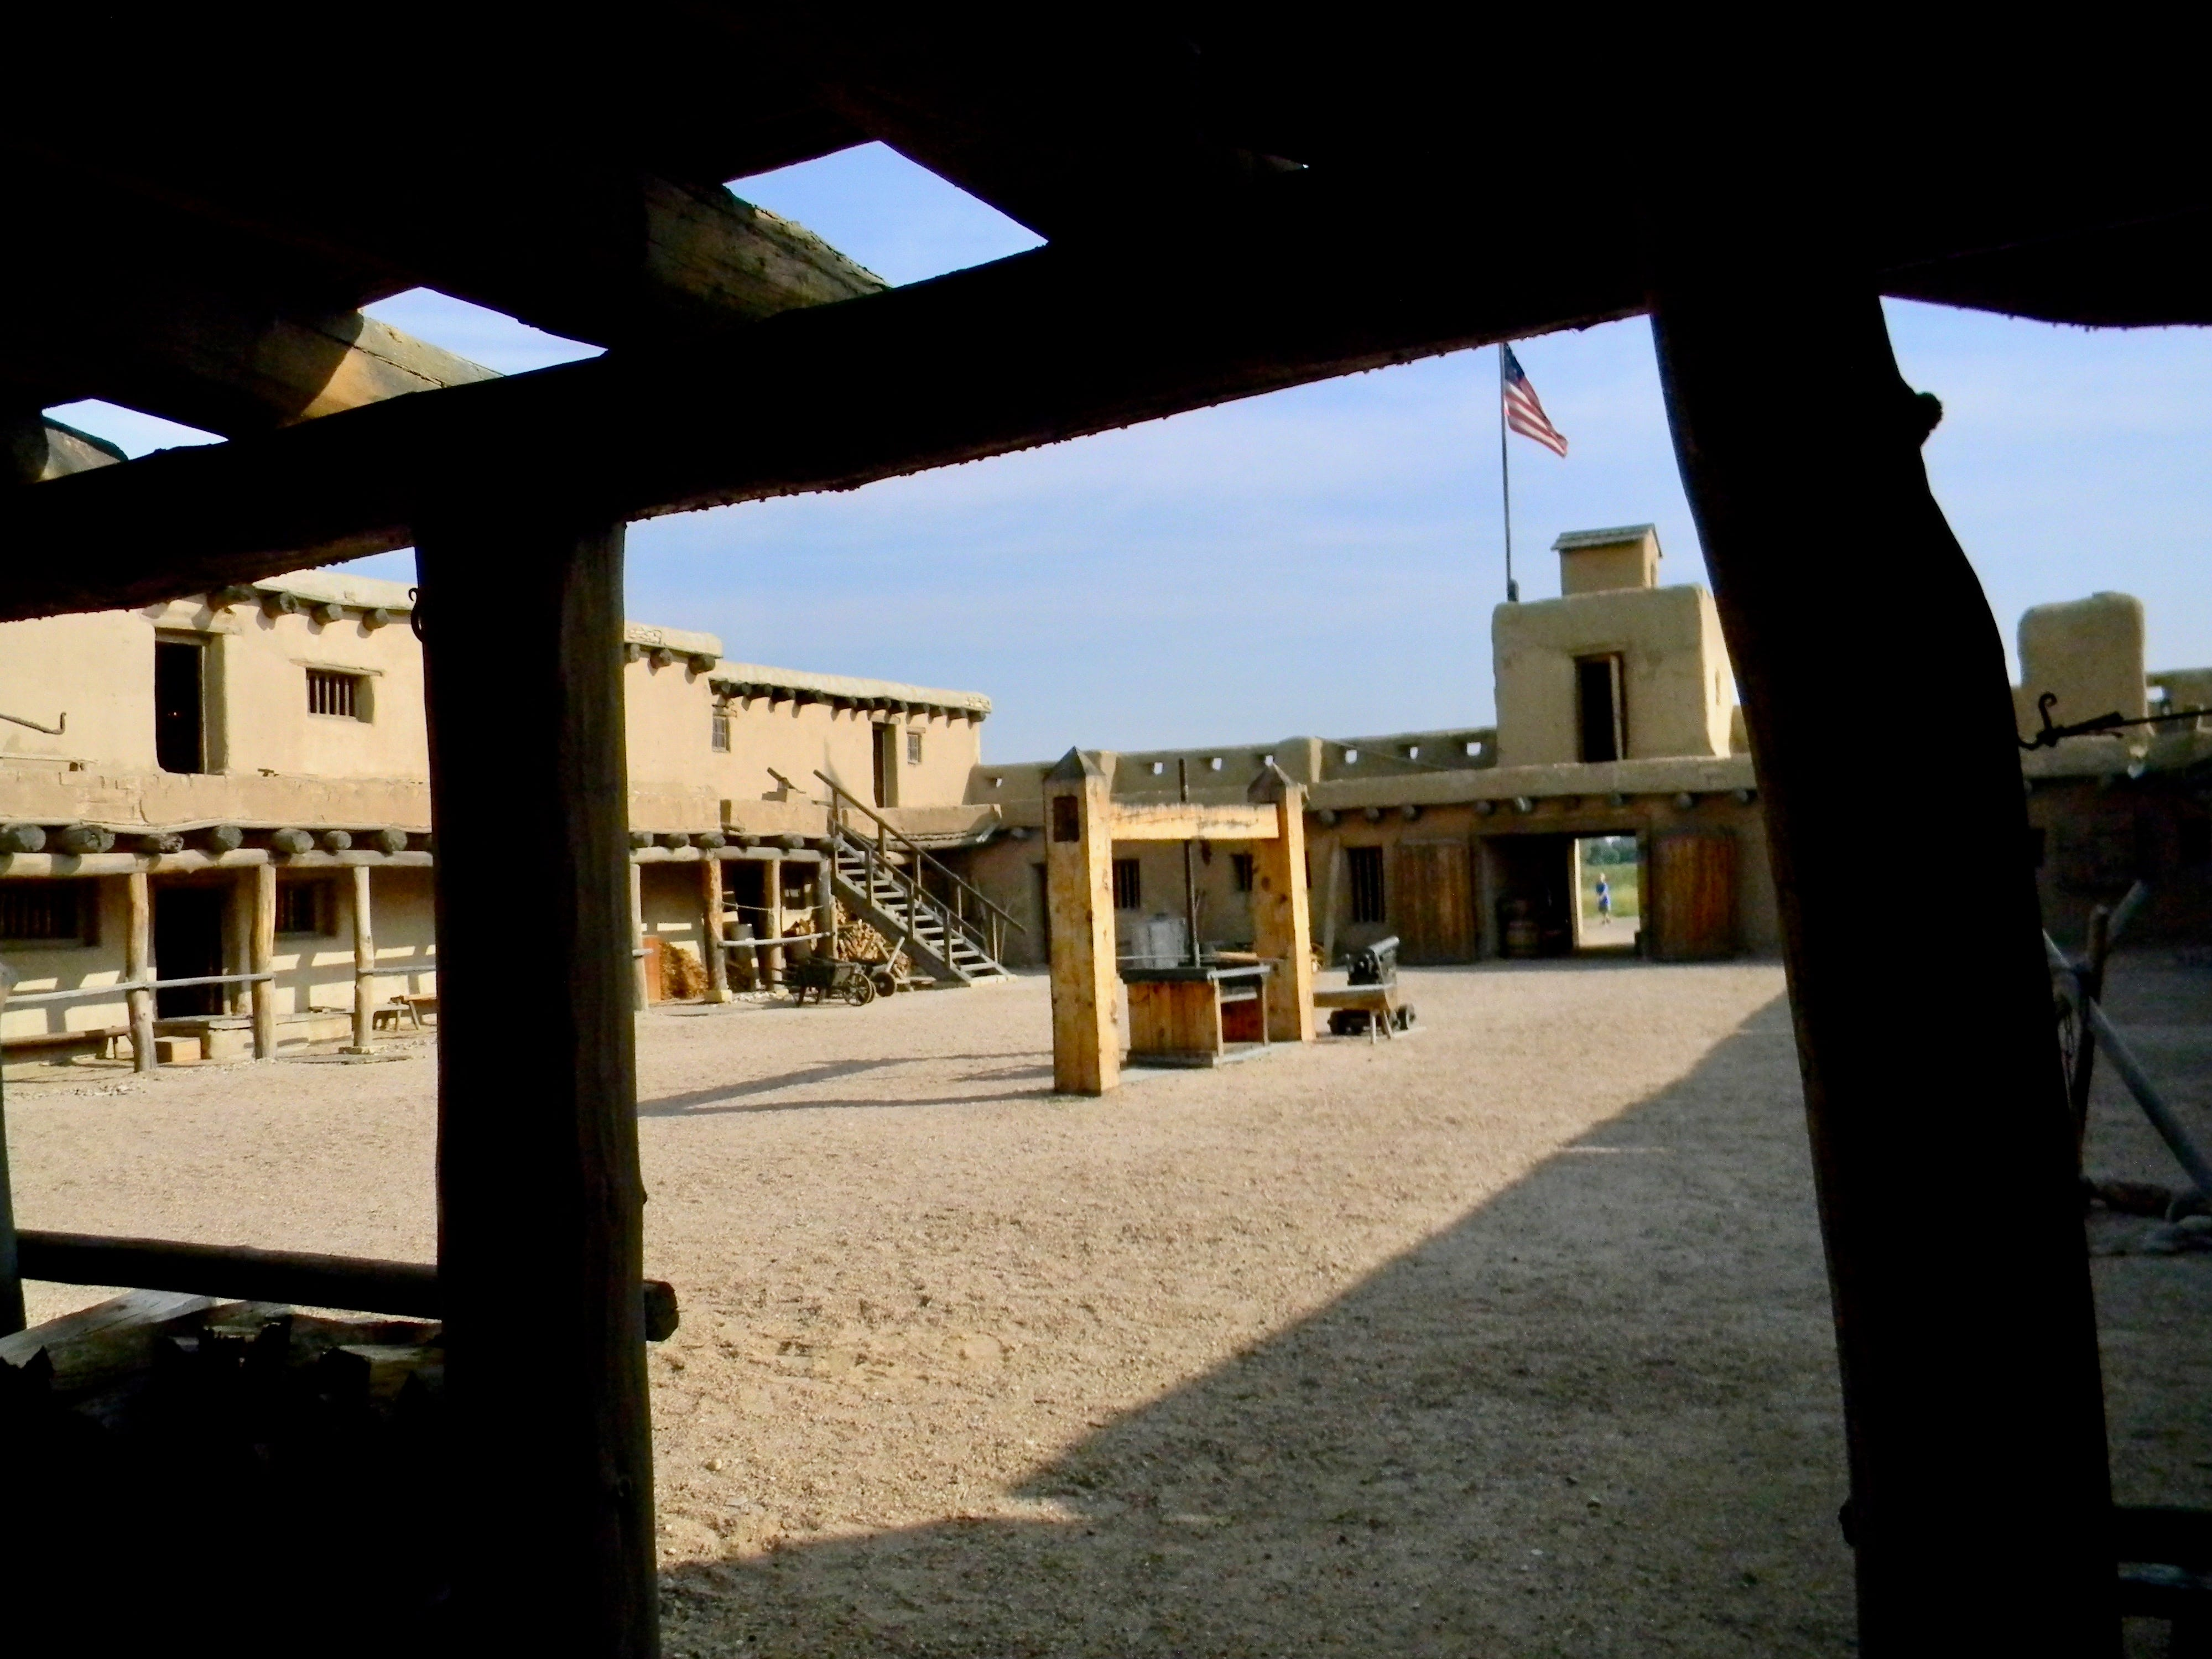 .In the center of Bent's Old Fort placita was a screw used to compress bales of buffalo robes.